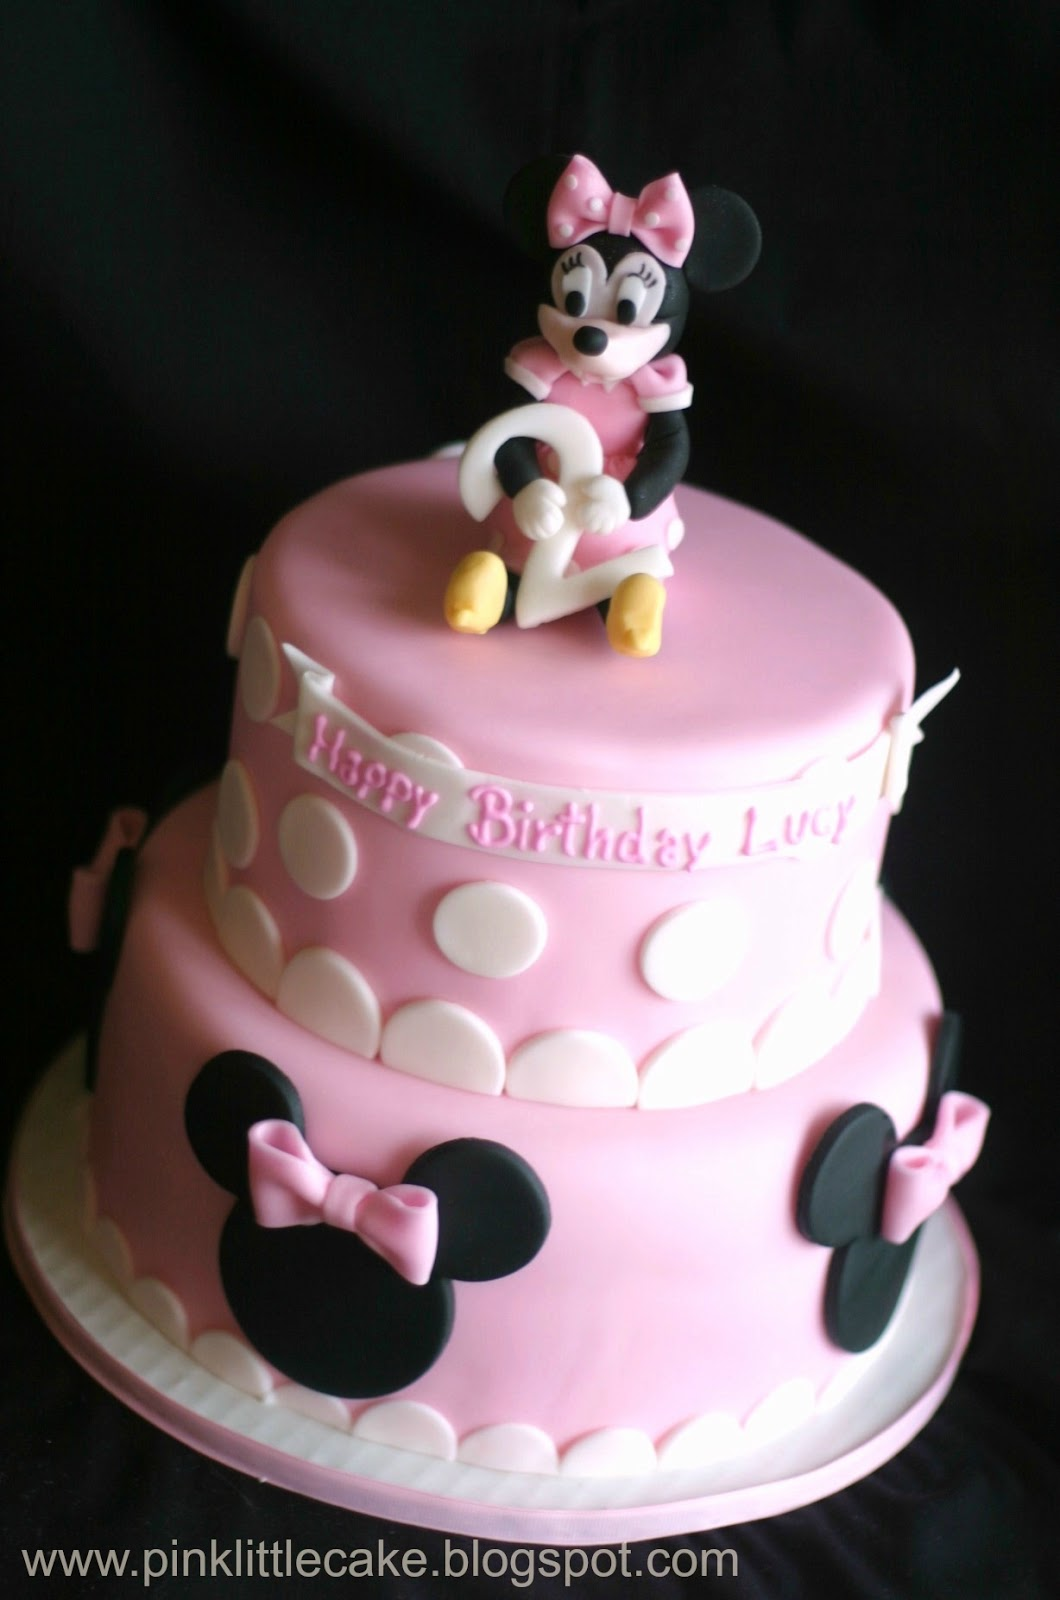 My Pink Little Cake Pink Baby Minnie Mouse Cake for a First